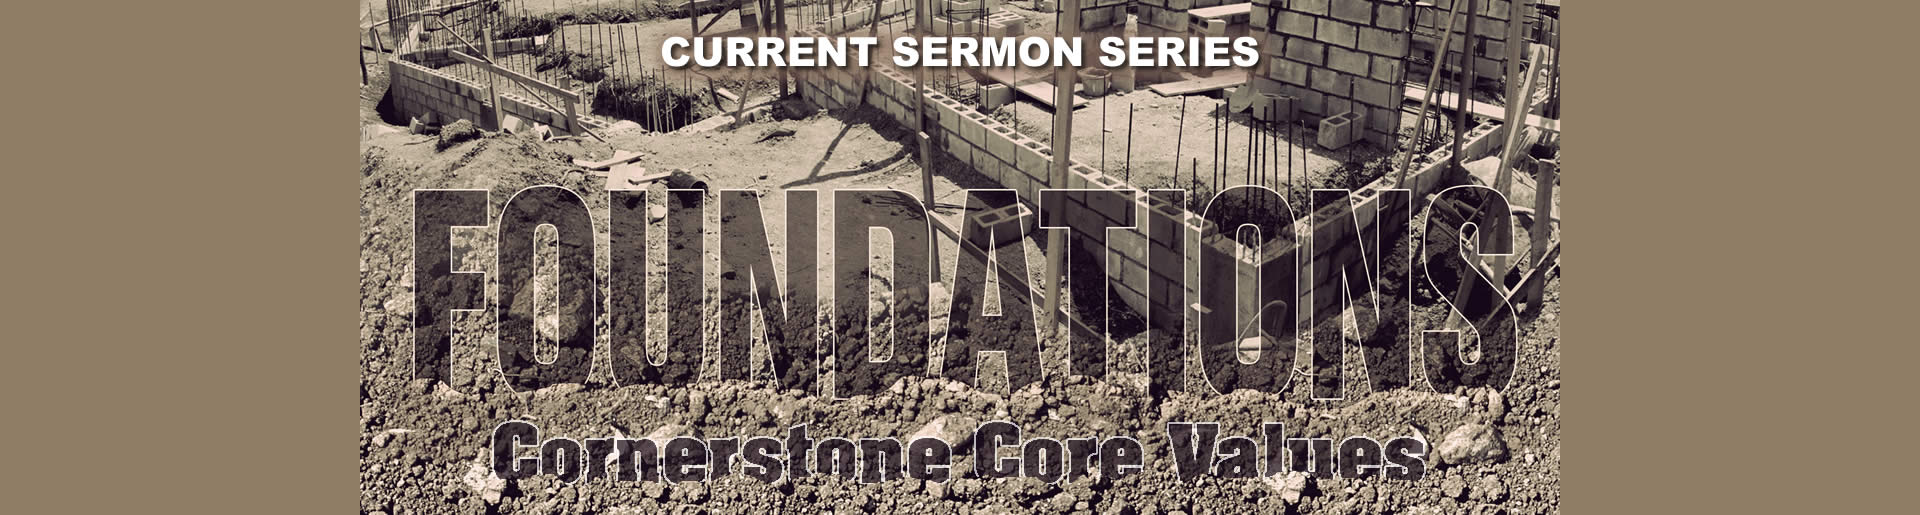 foundations-sermon-series-slider